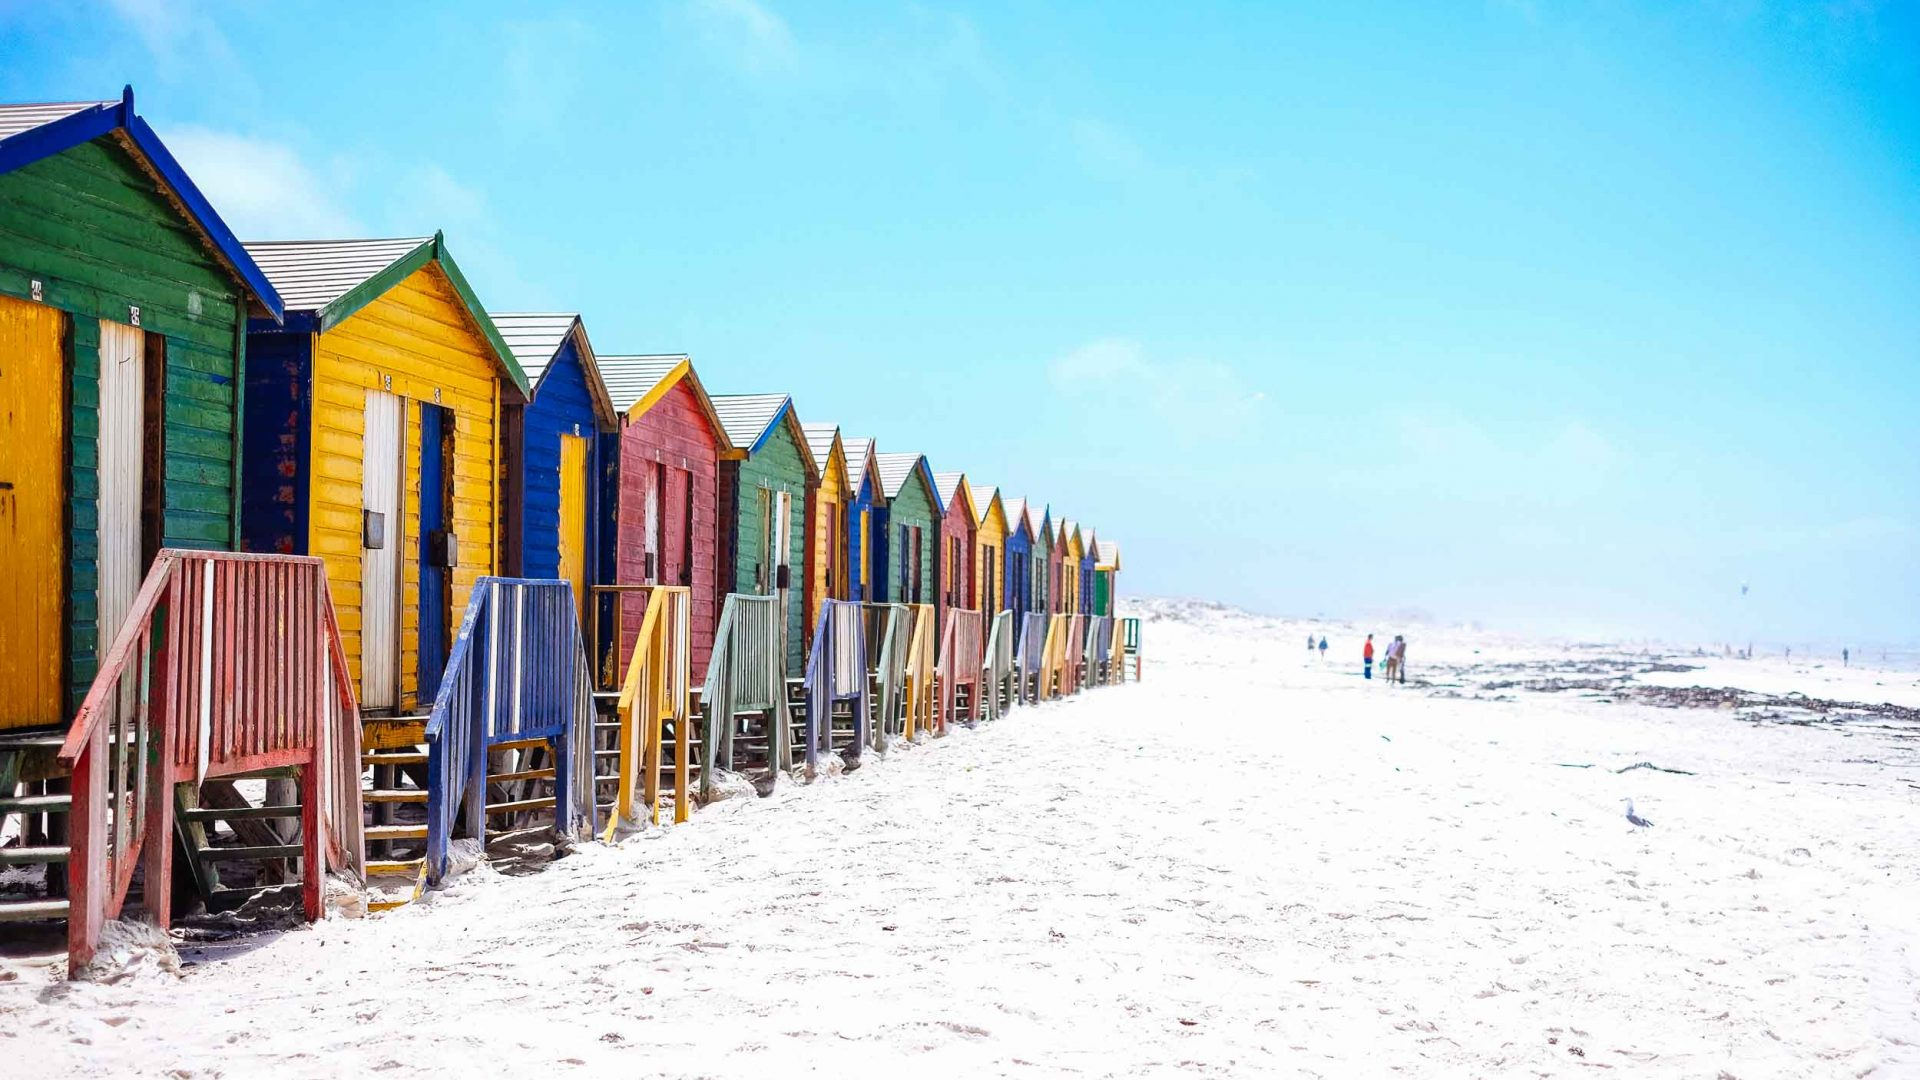 The white sands and colored beach shacks at Muizenberg, Cape Town, South Africa.